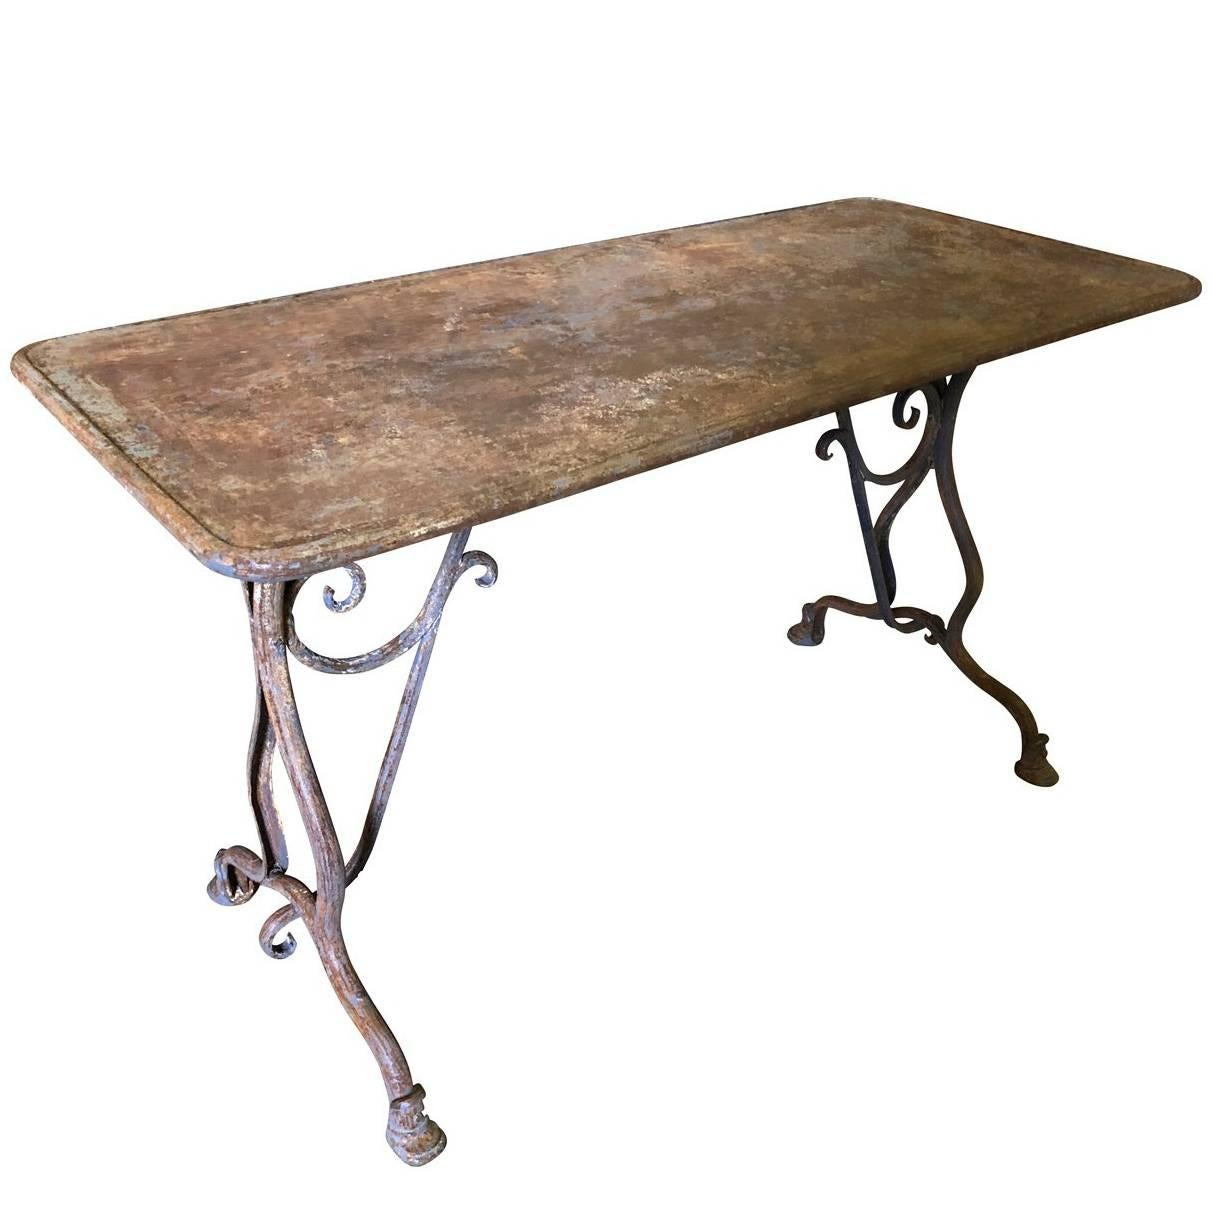 French 19th Century Garden Table from Arras